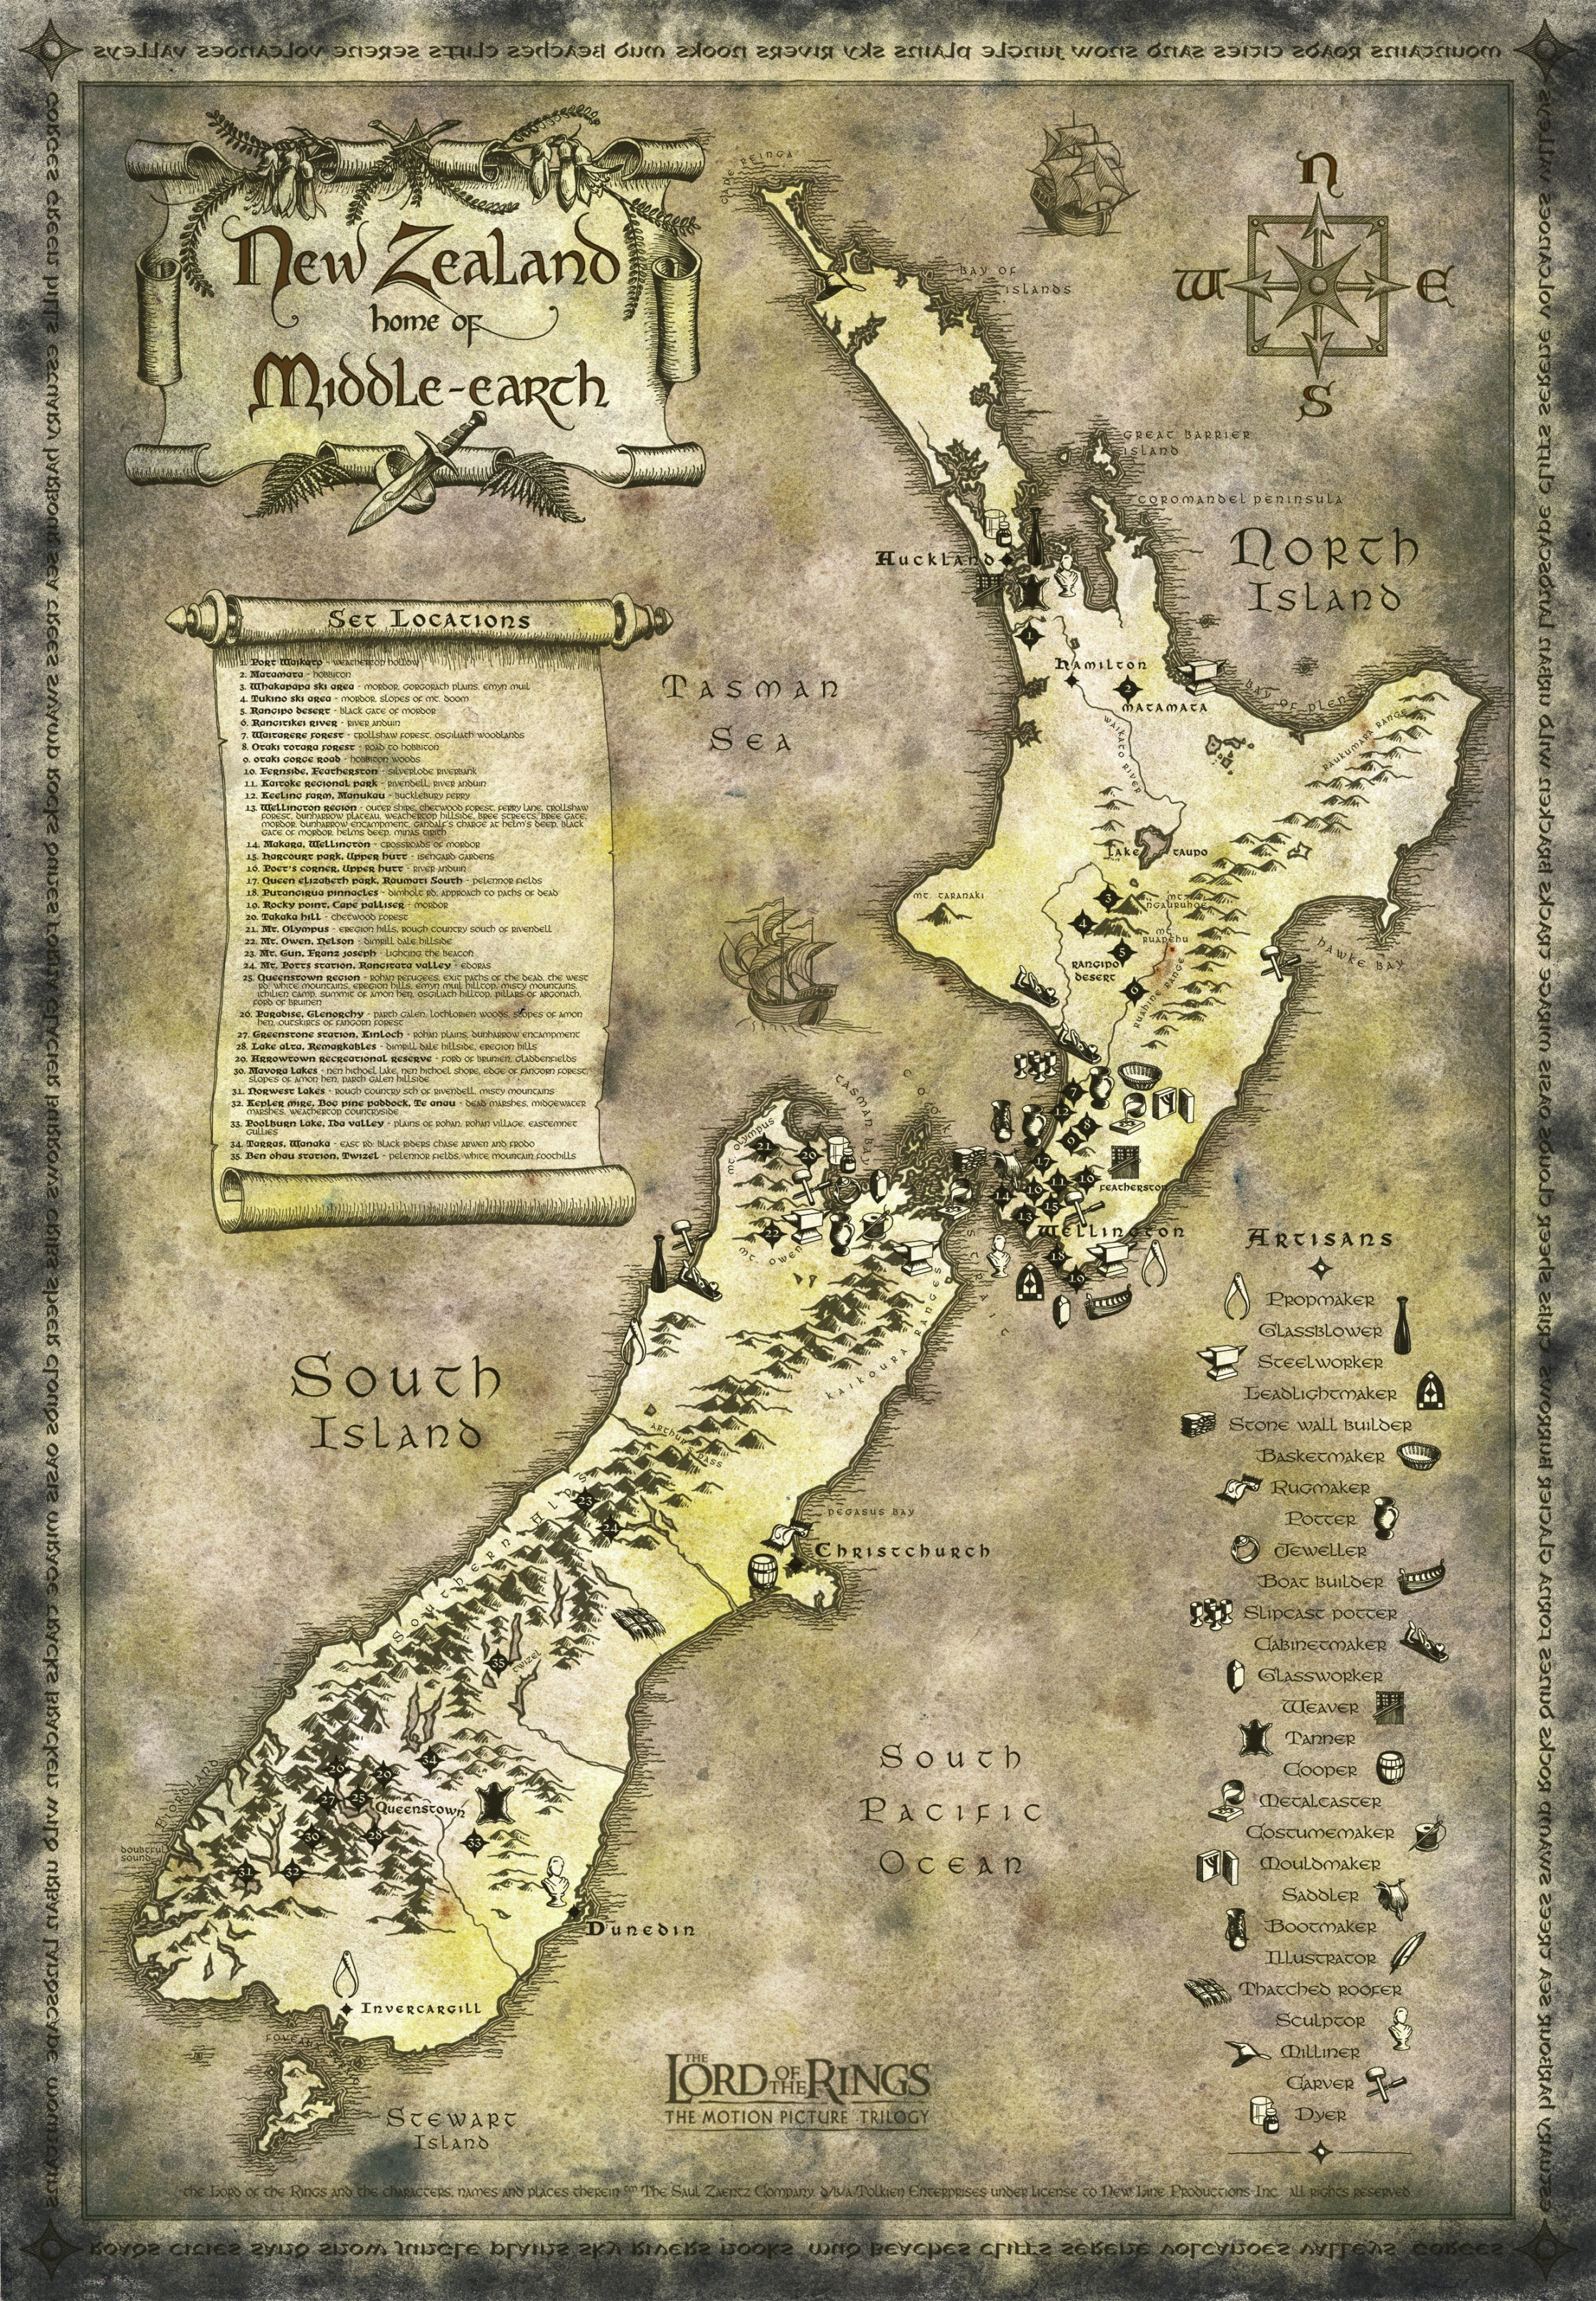 new zealand lord of the rings tourist map